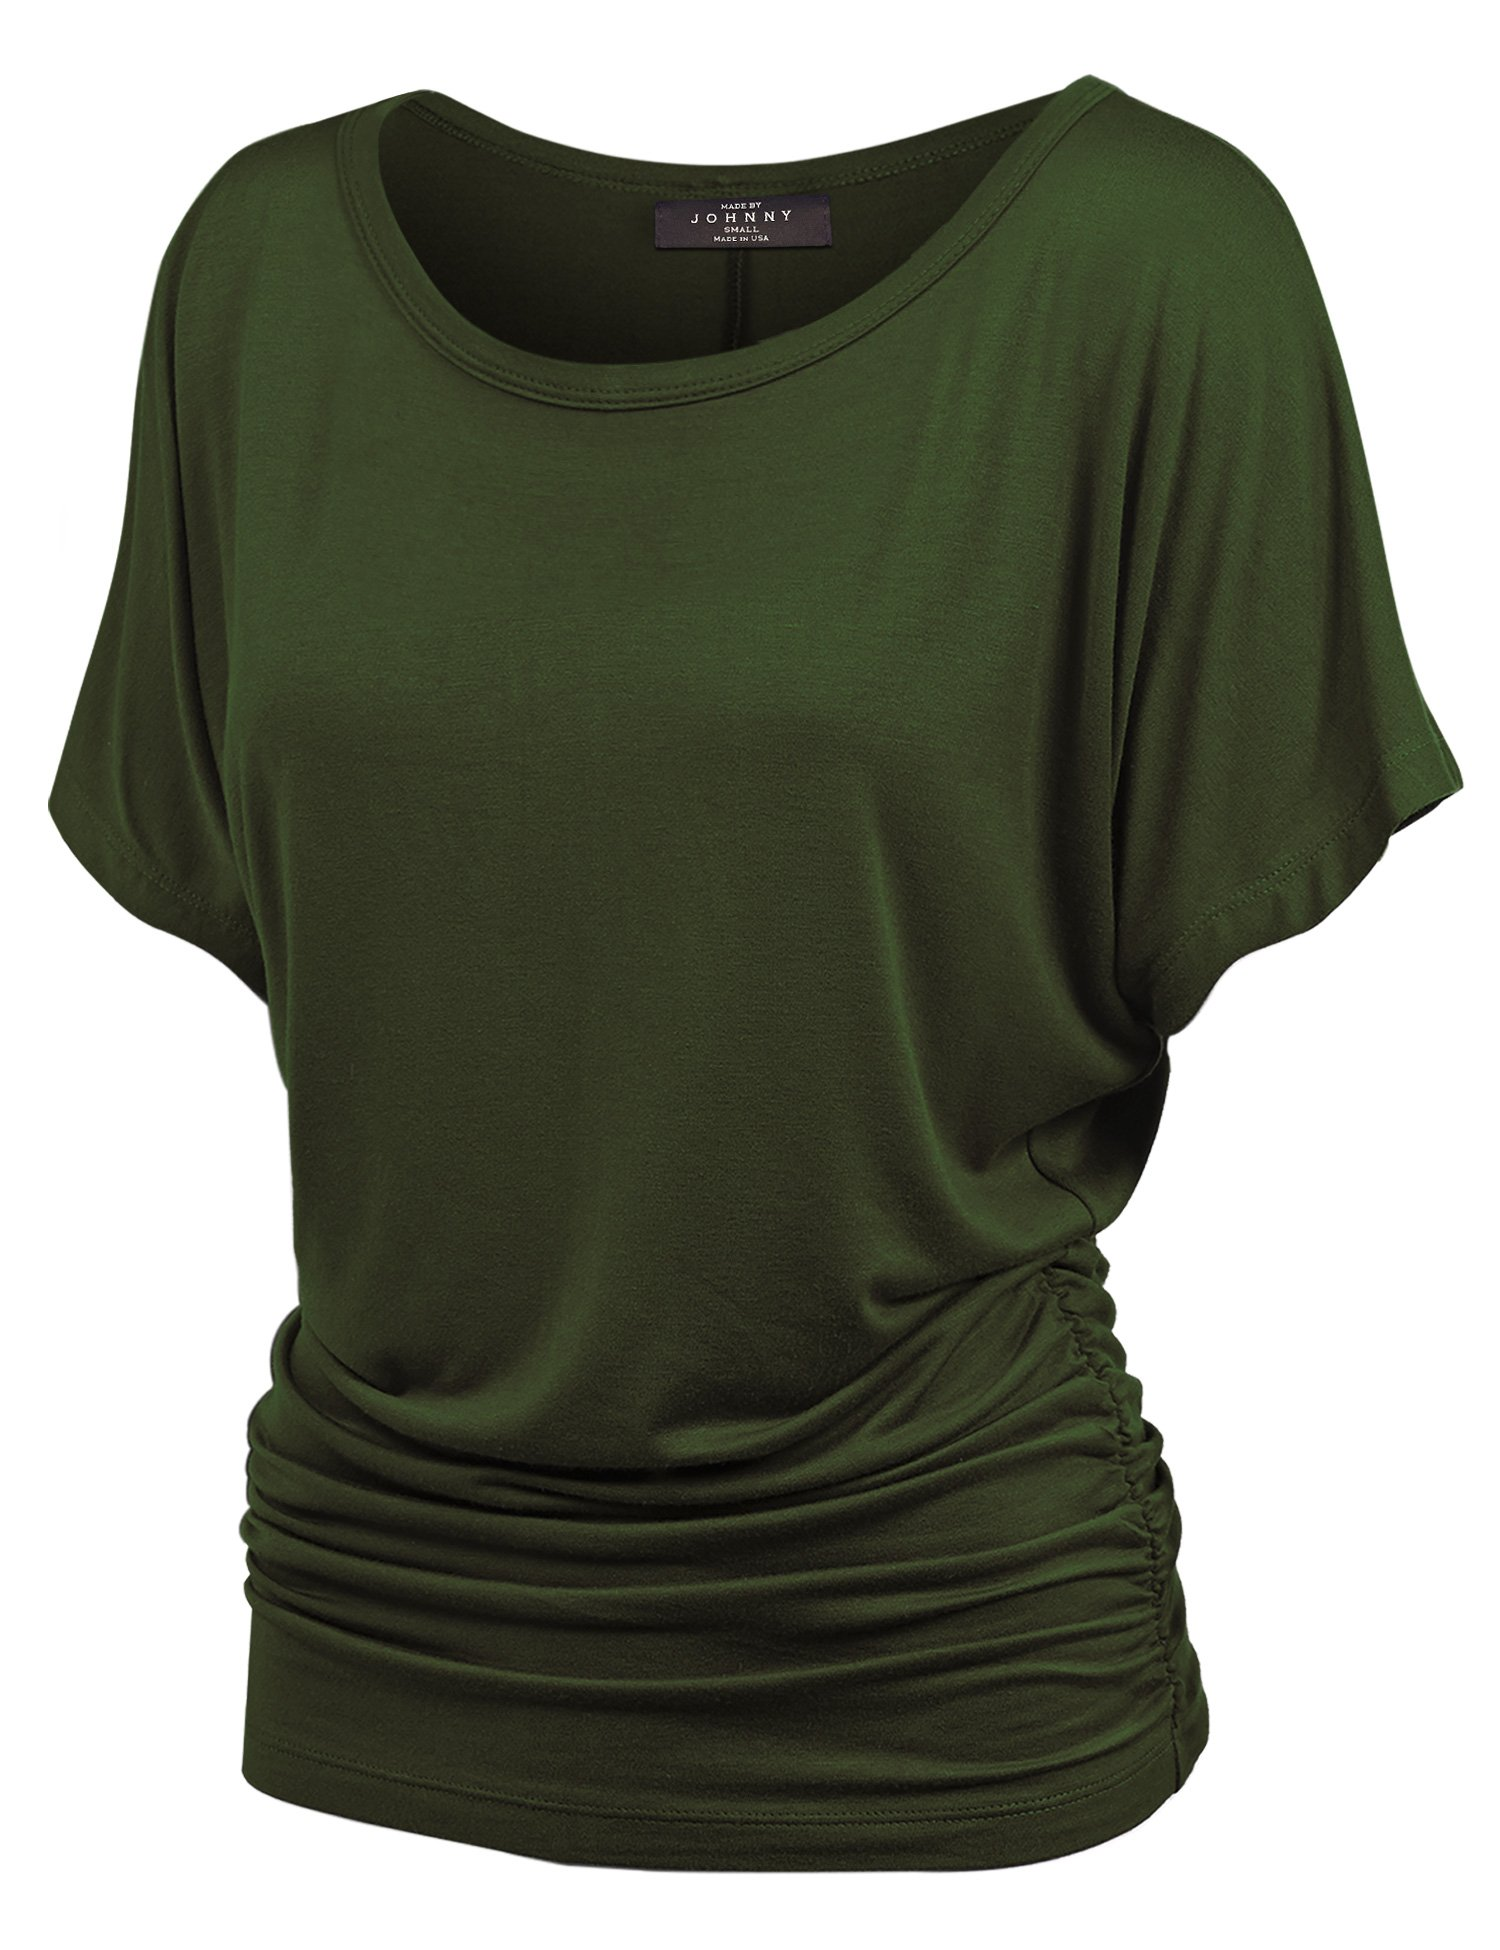 Made By Johnny WT817 Womens Dolman Drape Top with Side Shirring L Olive